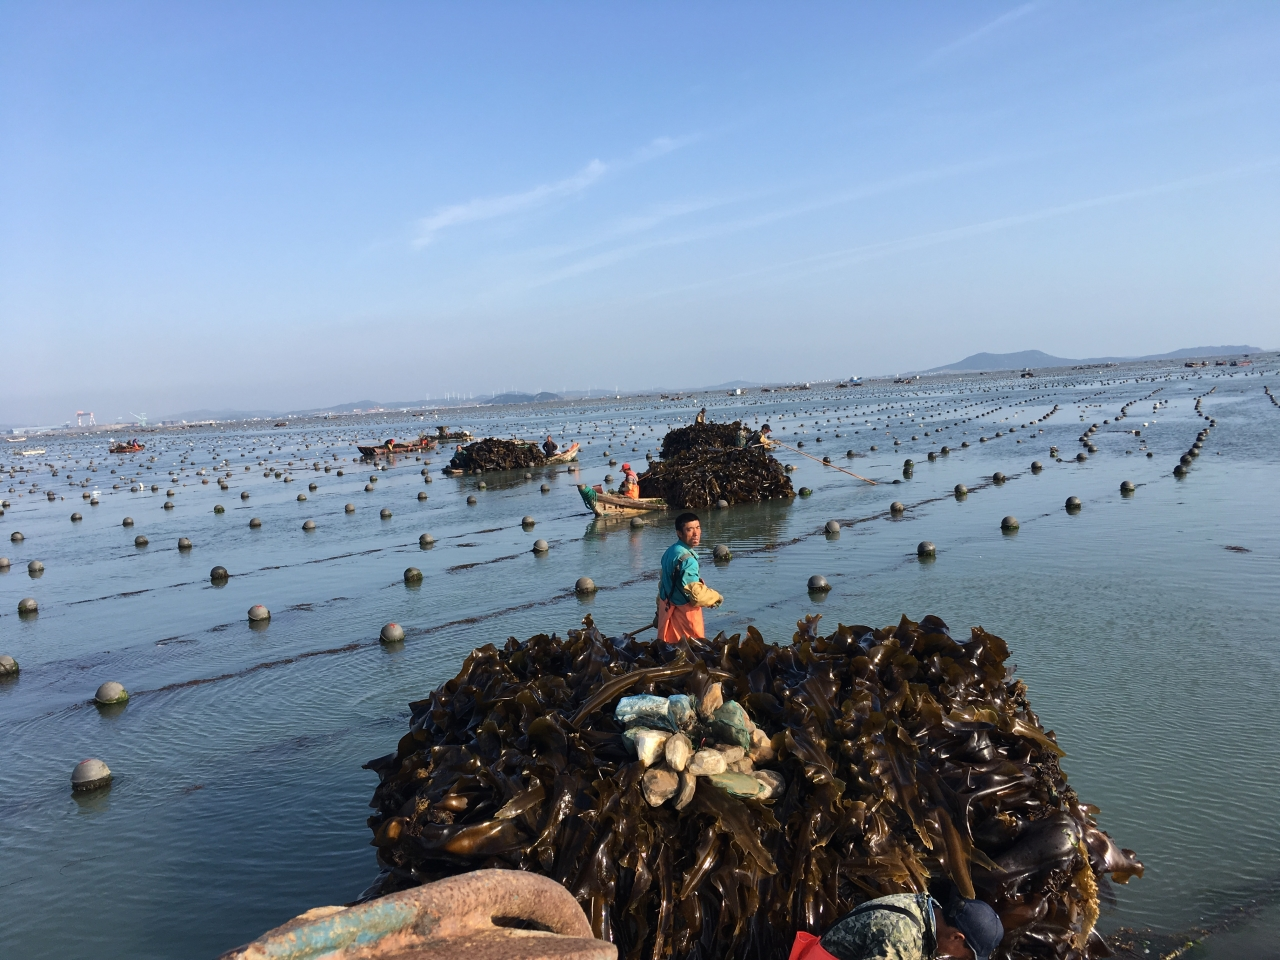 The Oceans 2050 study is engaging seaweed farms in 12 countries including Canada, Chile, China (pictured above), Denmark, France, Indonesia, Japan, Madagascar, Malaysia, Norway, South Korea, and the United States.